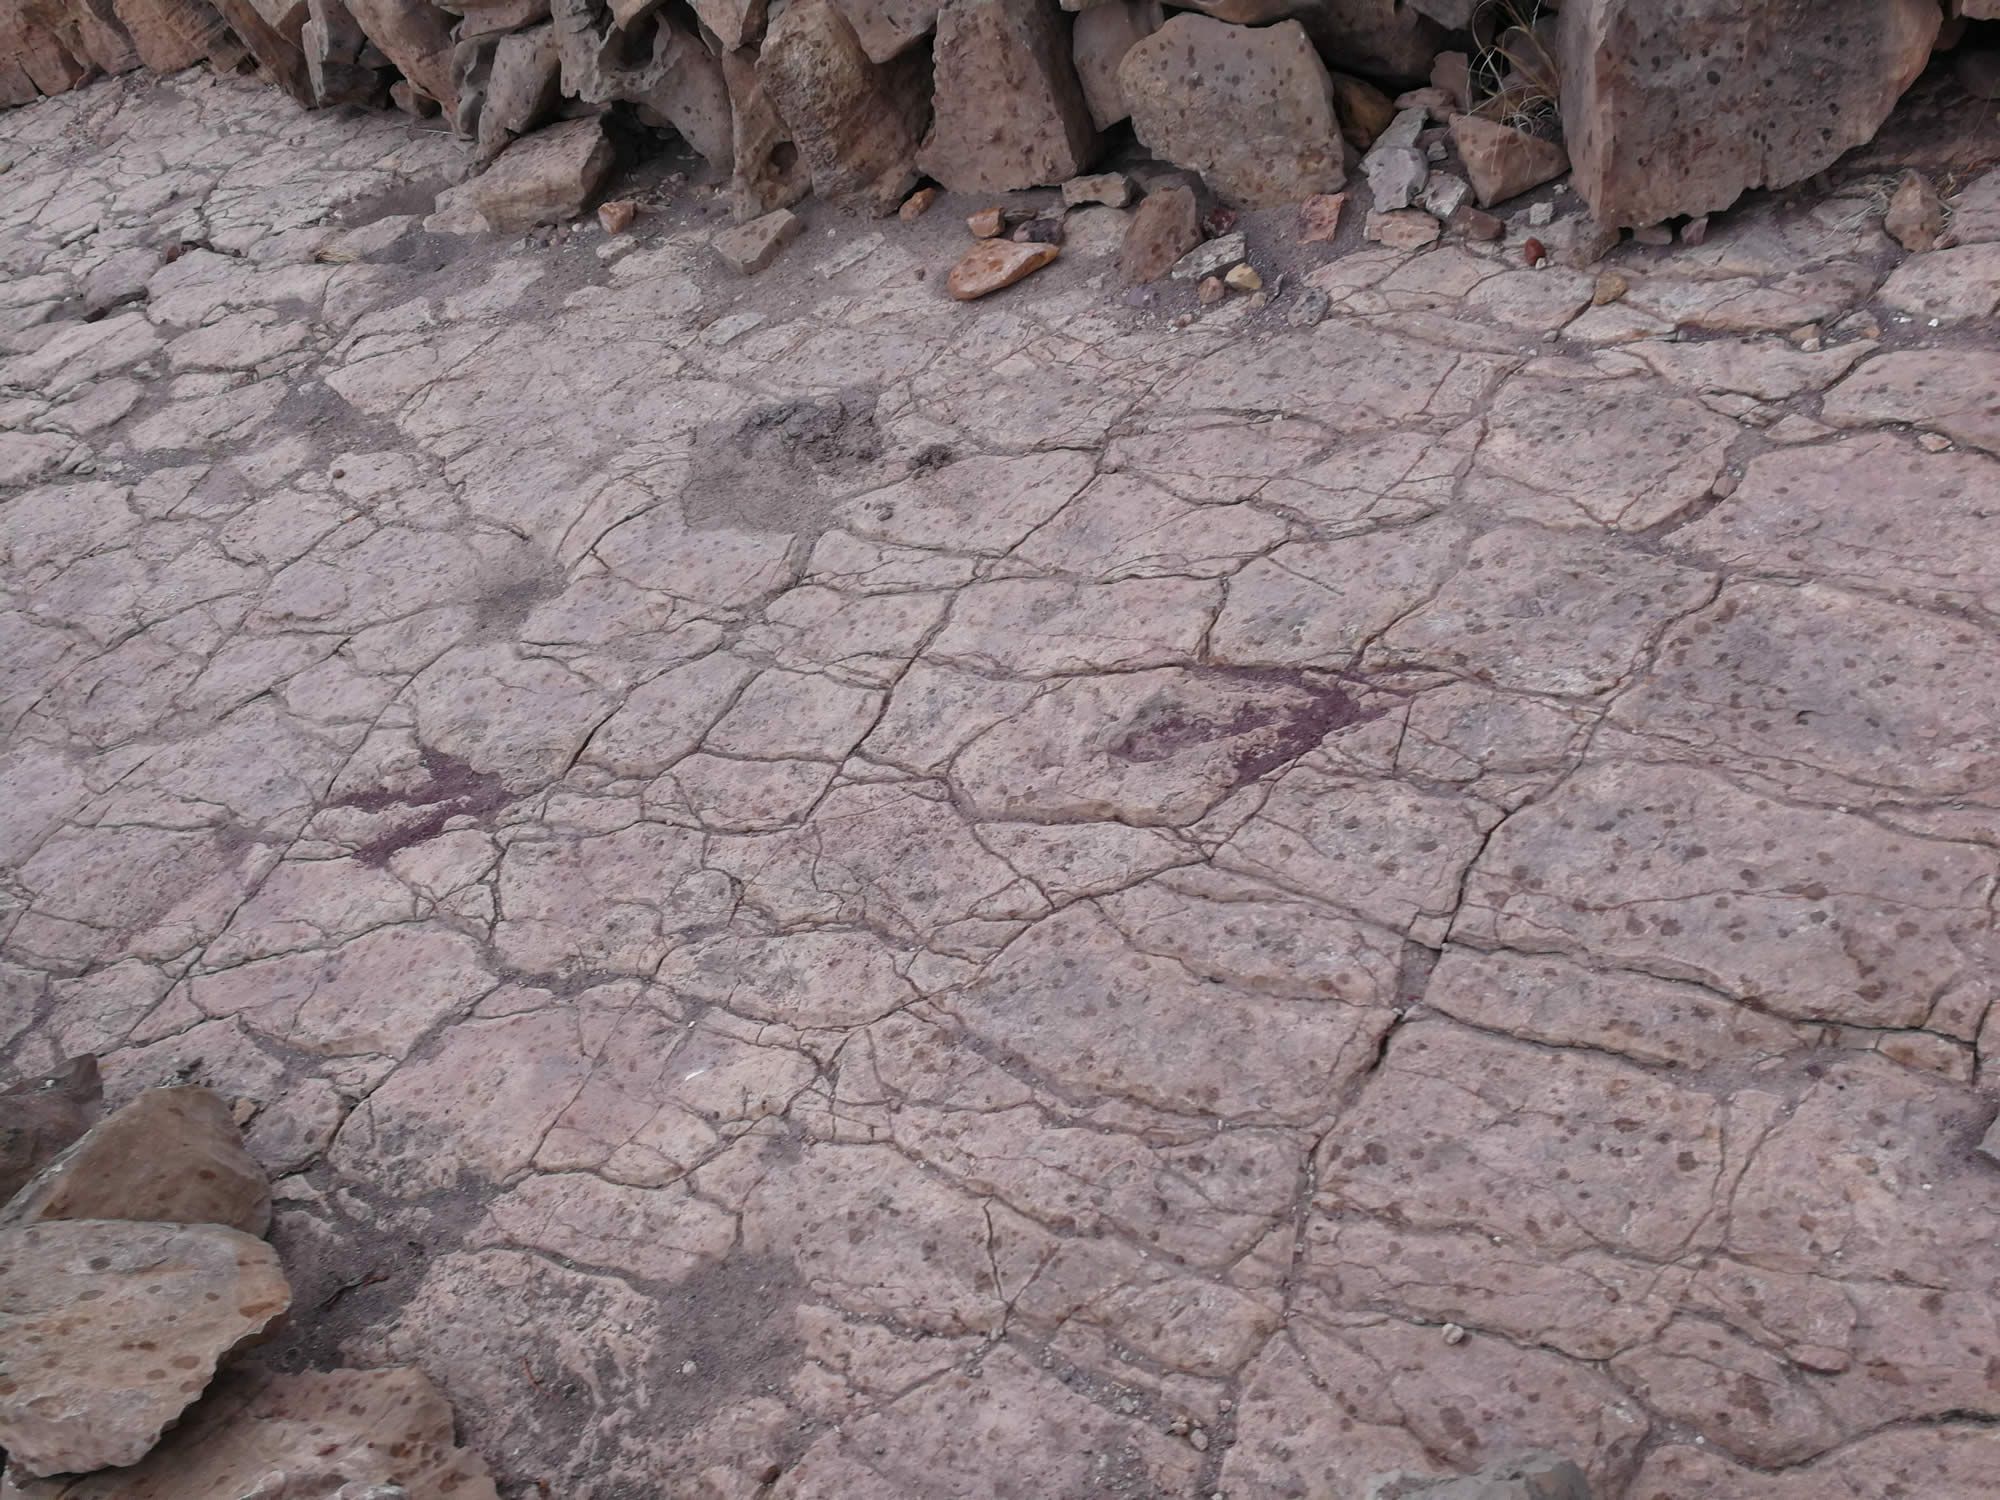 Dinosaur footprints in Torotoro